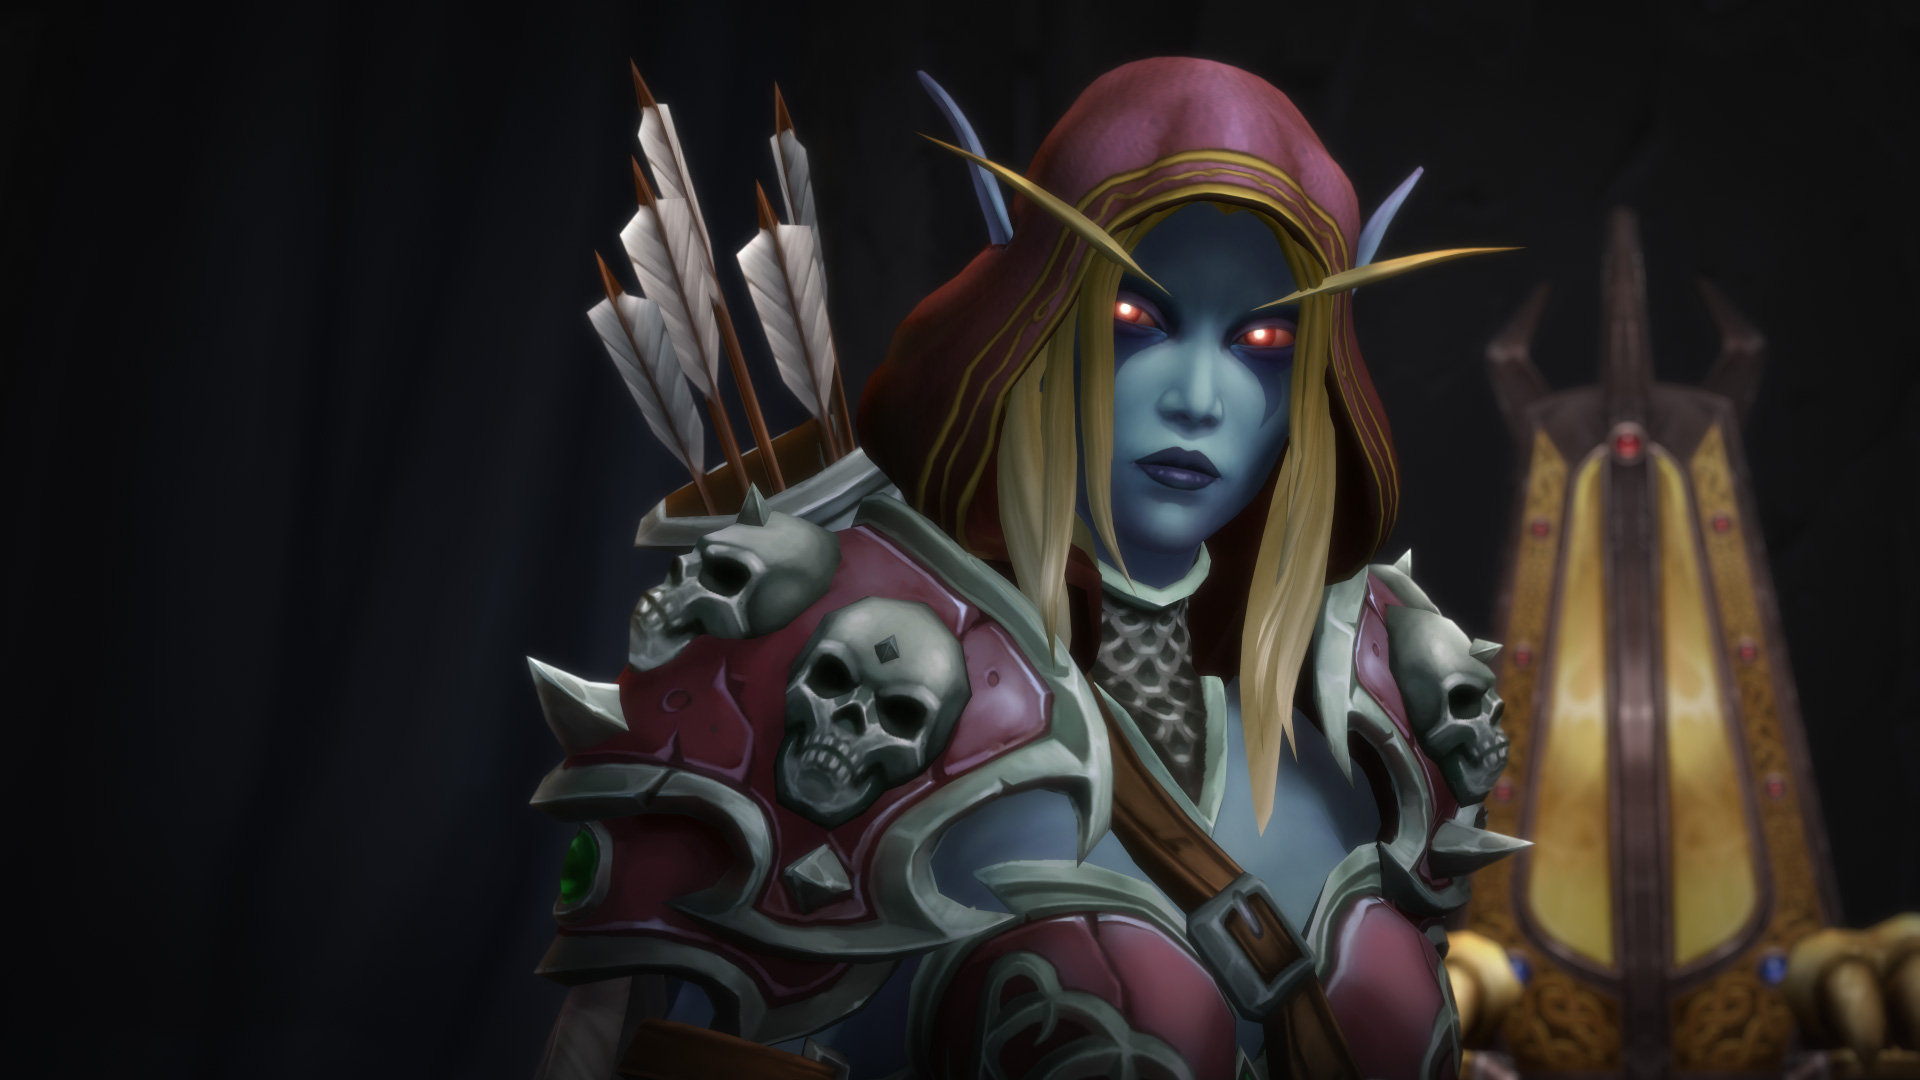 WoW Sylvanas Windrunner BfA Throne Room